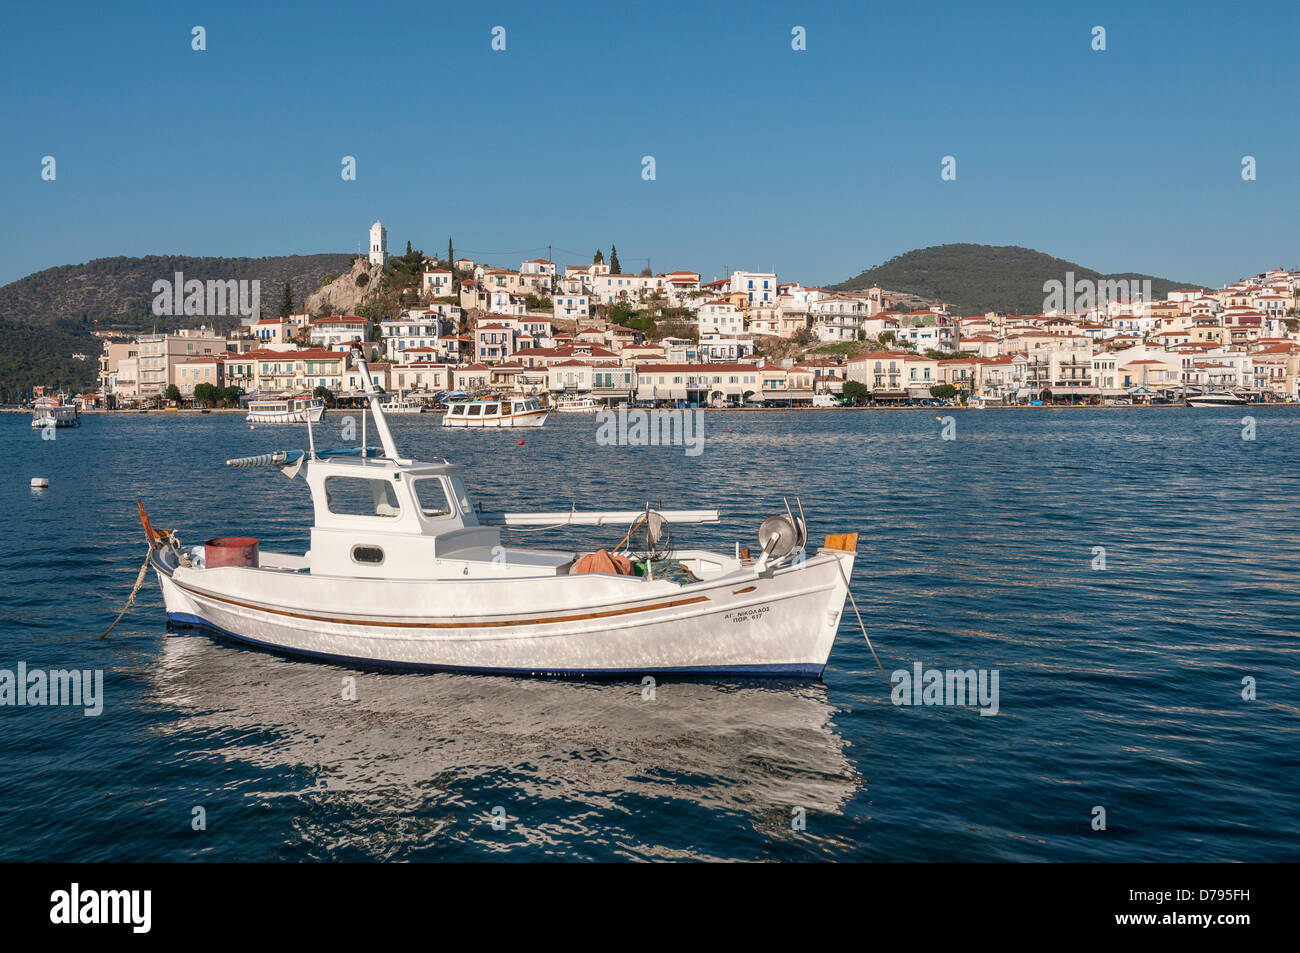 The Island and Town of Poros, seen from the harbour at Galatas, Attica, Peloponnese, Greece. - Stock Image